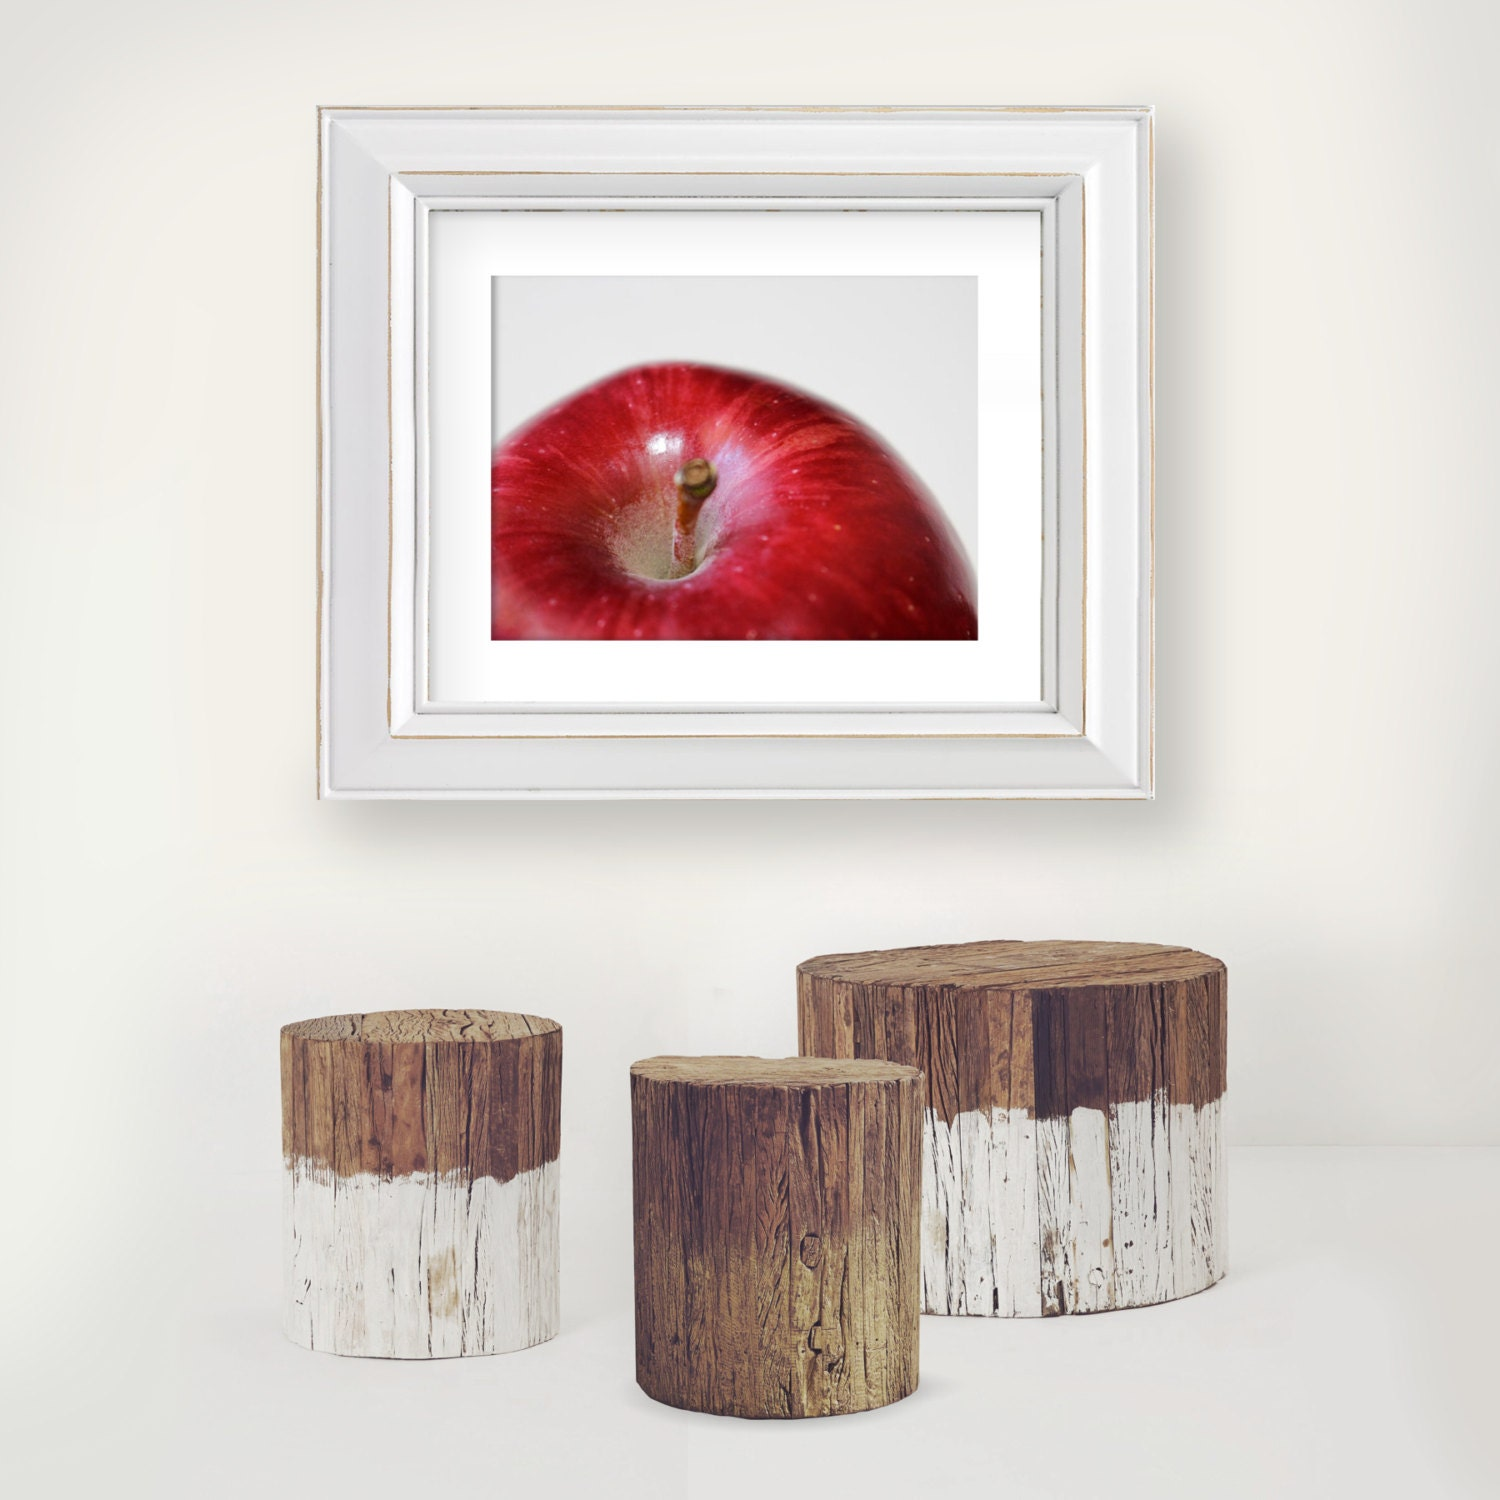 Red Apple Photography 12X16 Wall Art Rustic Kitchen Decor